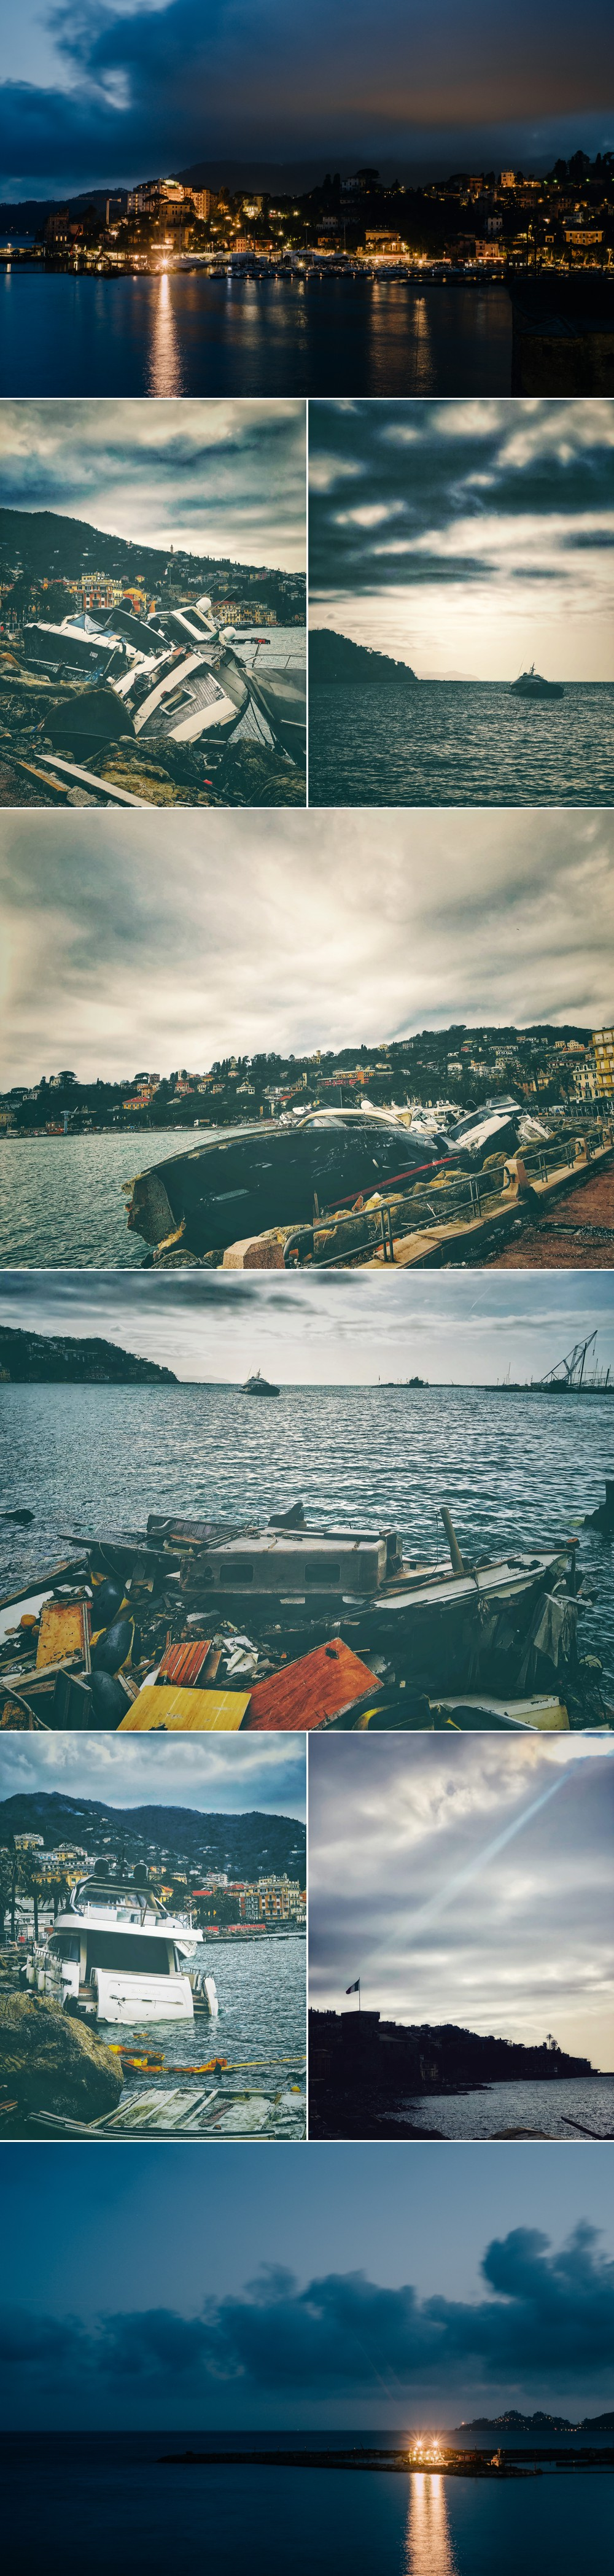 In October 2018 Rappello's port was destroyed